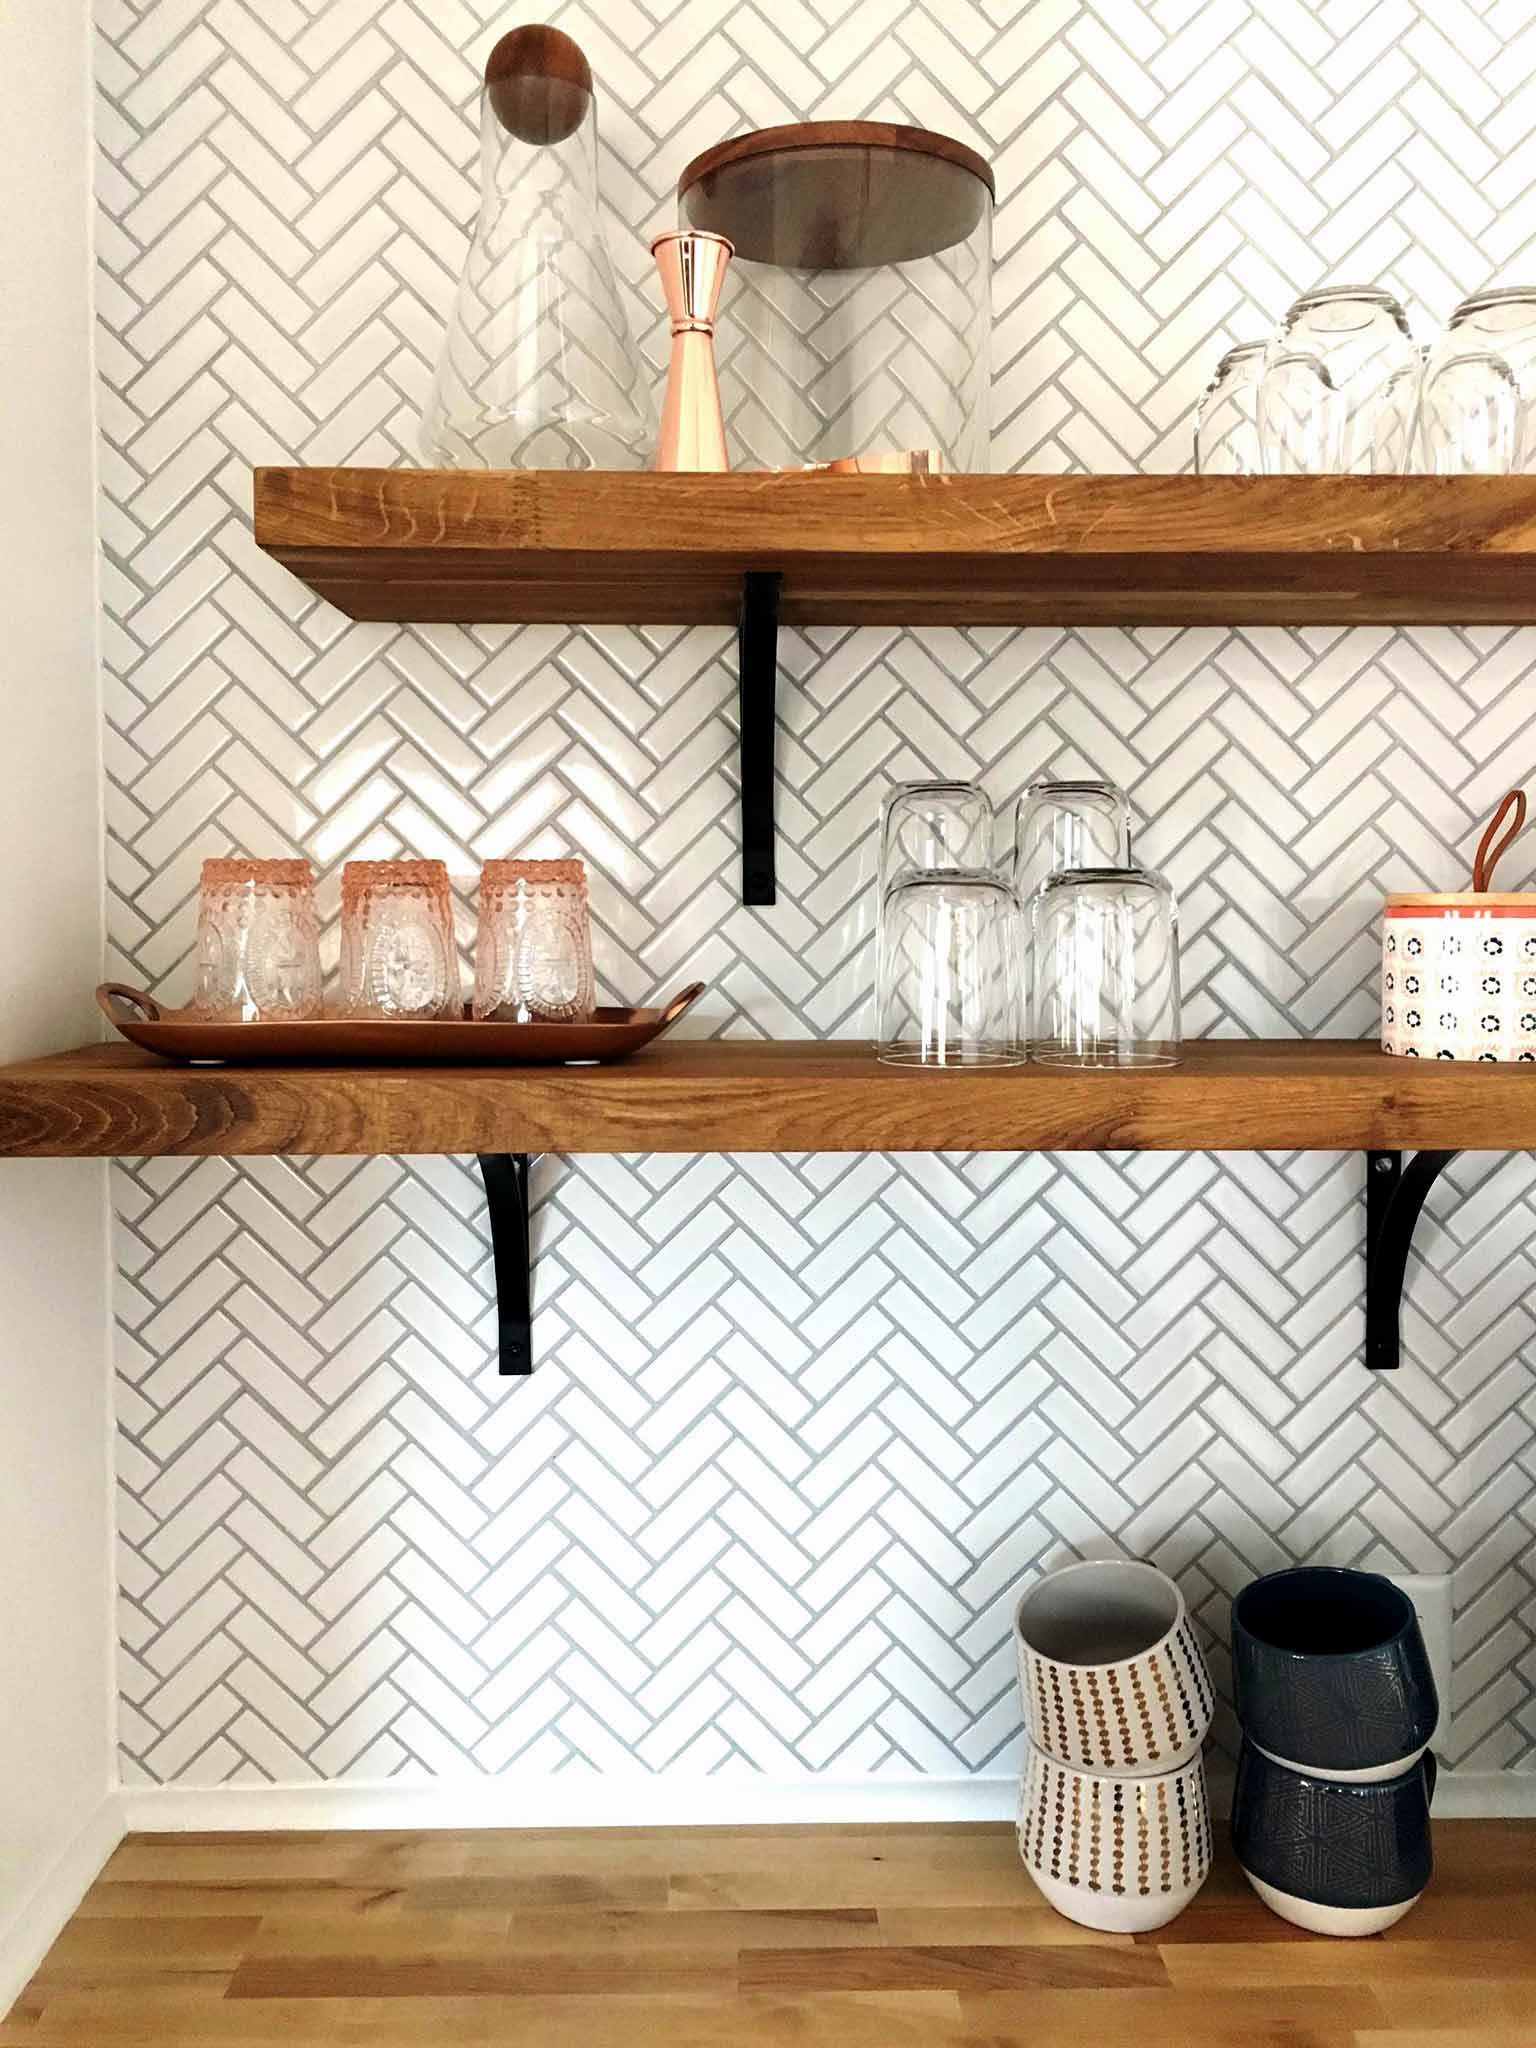 Sneak peek of guest house kitchenette area - herringbone tile with wooden open shelving - That Homebird Life Blog